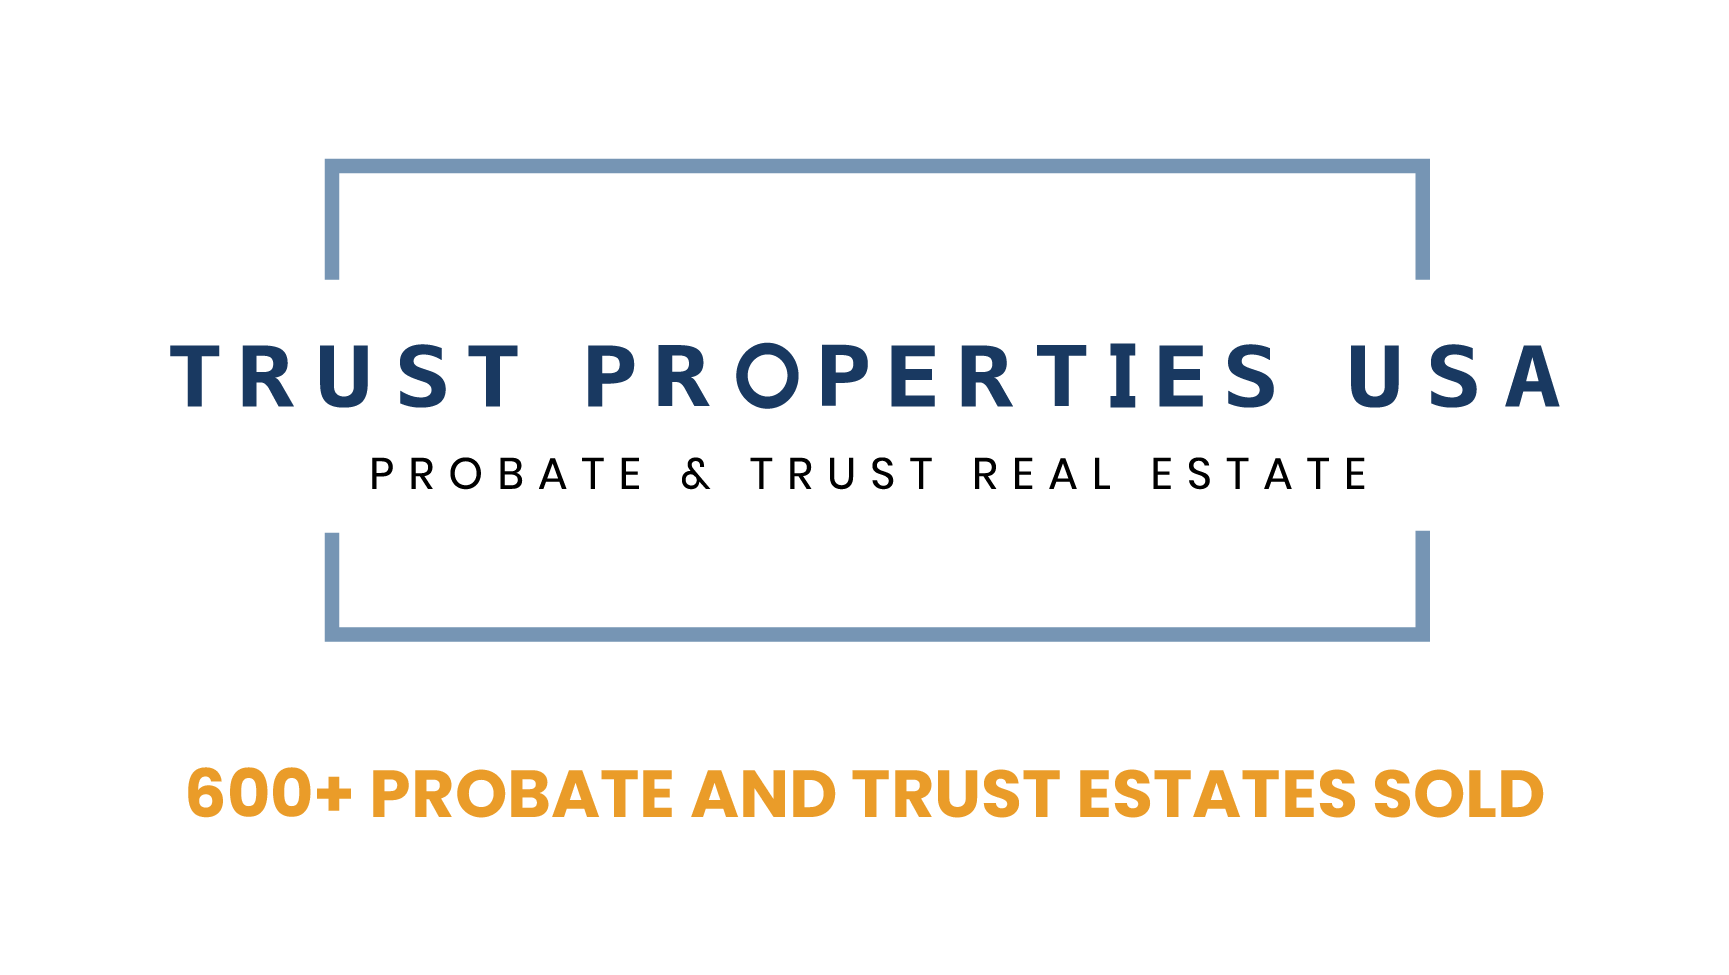 Trust Properties USA